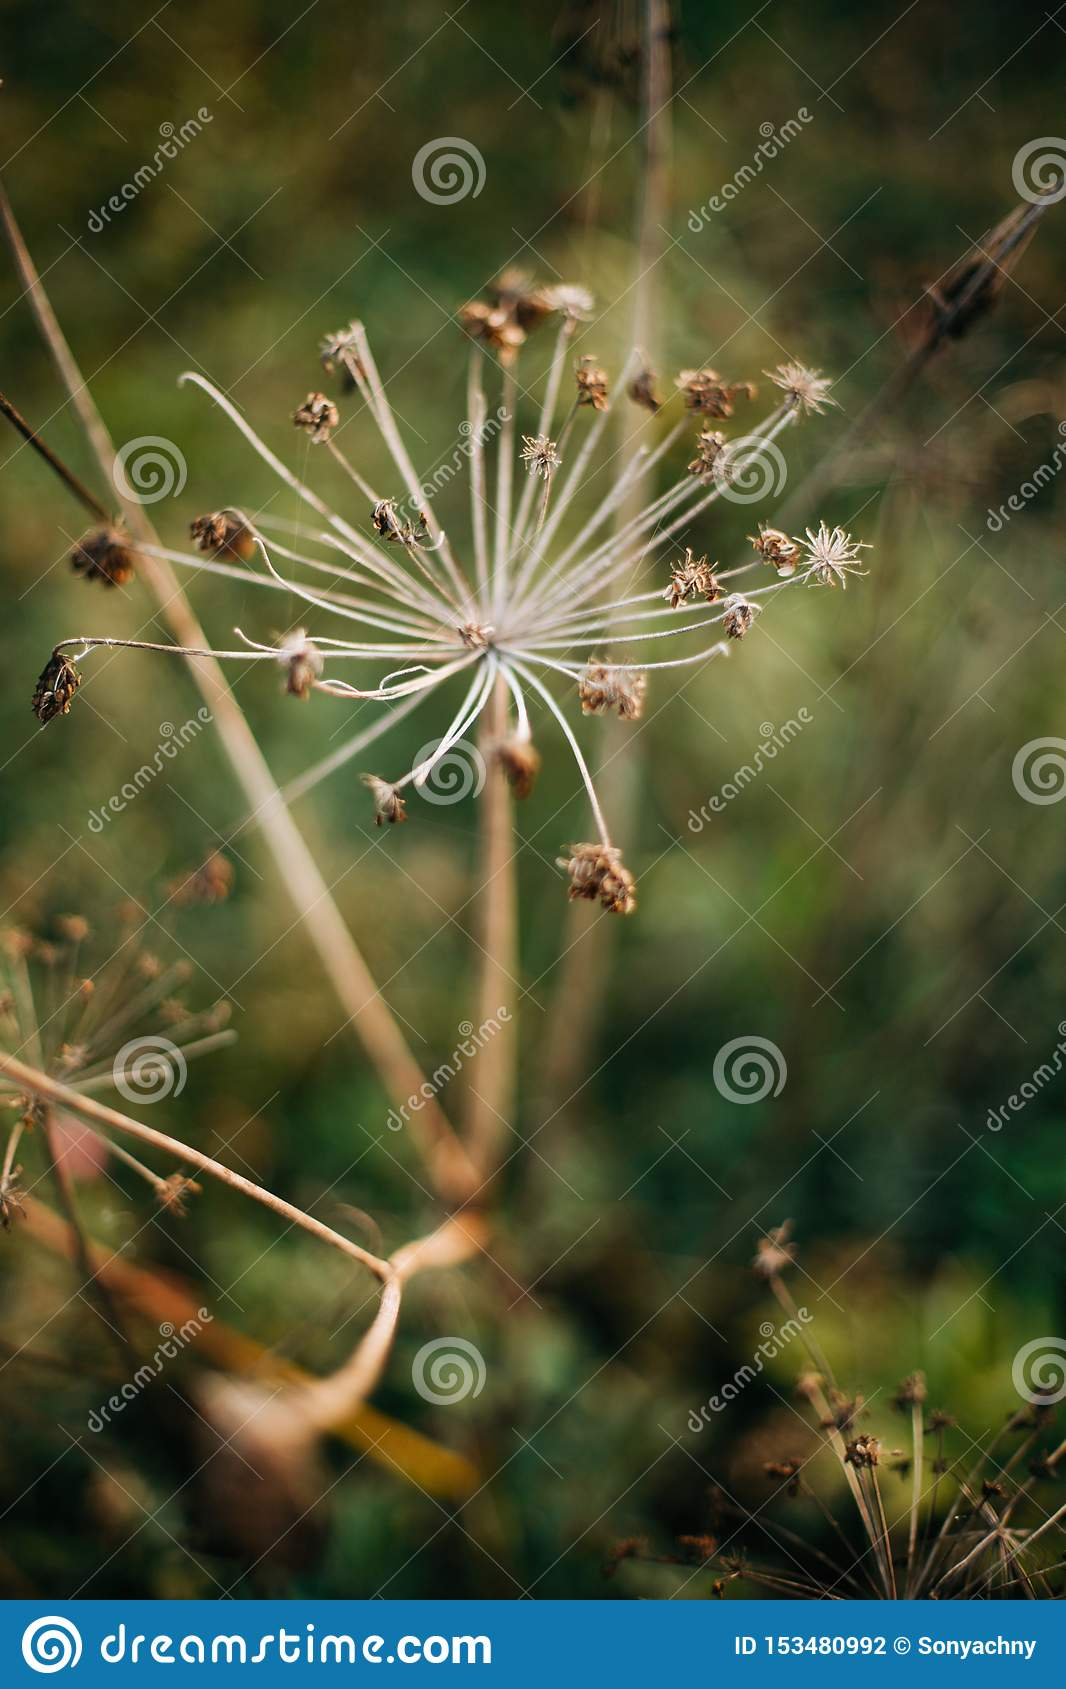 Beautiful dried herbs, aegopodium podagraria or angelica, in sunny meadow at sunset in mountains. Gathering dried wildflowers in